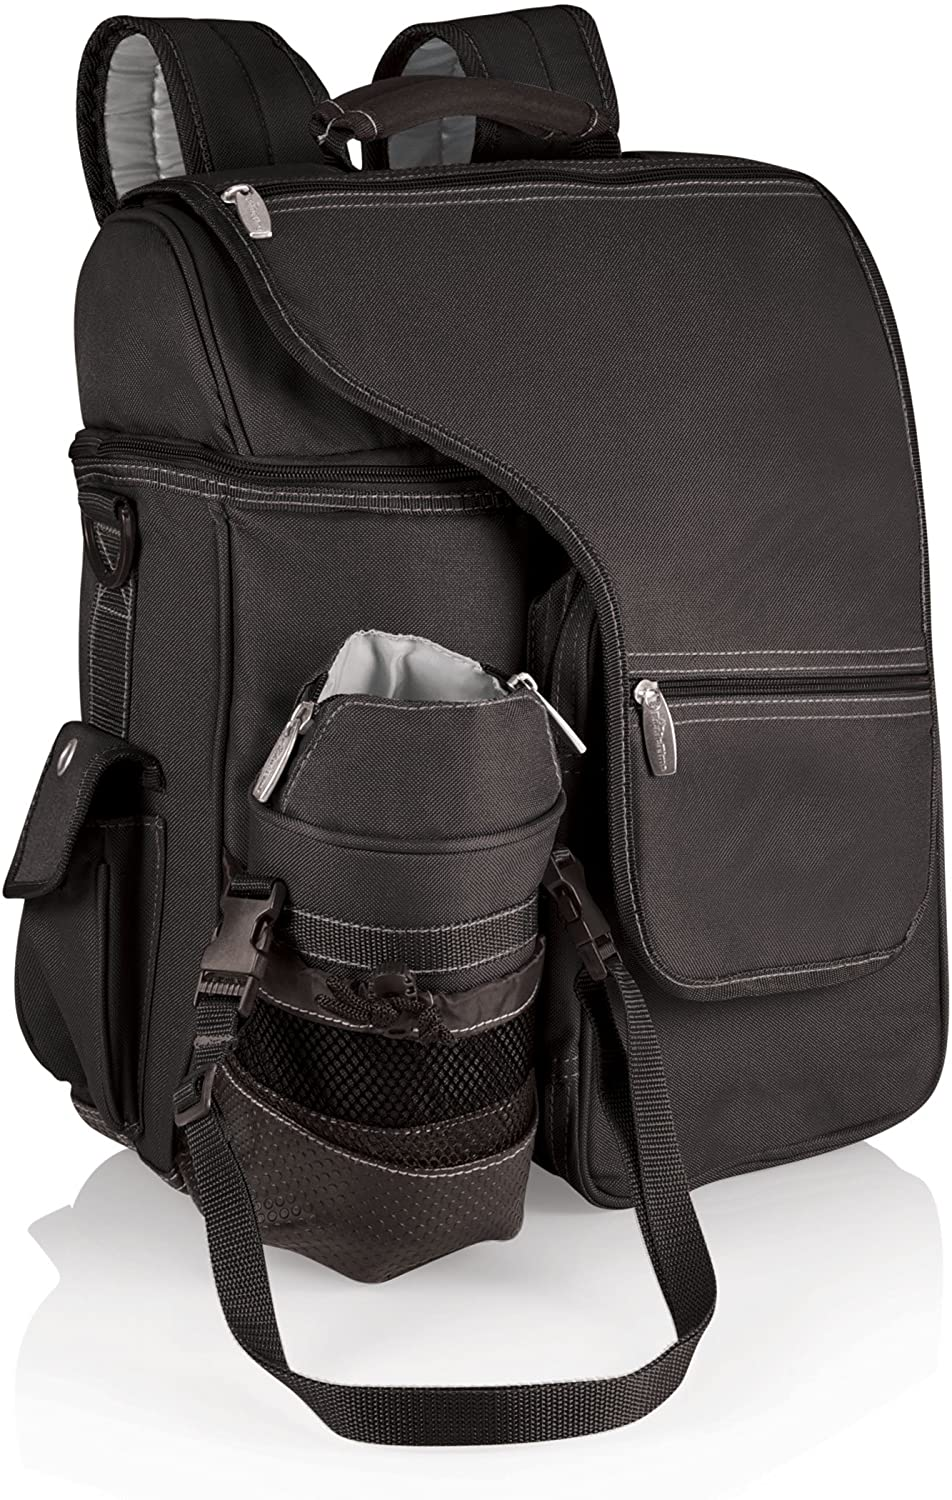 ONIVA Turismo Insulated Backpack